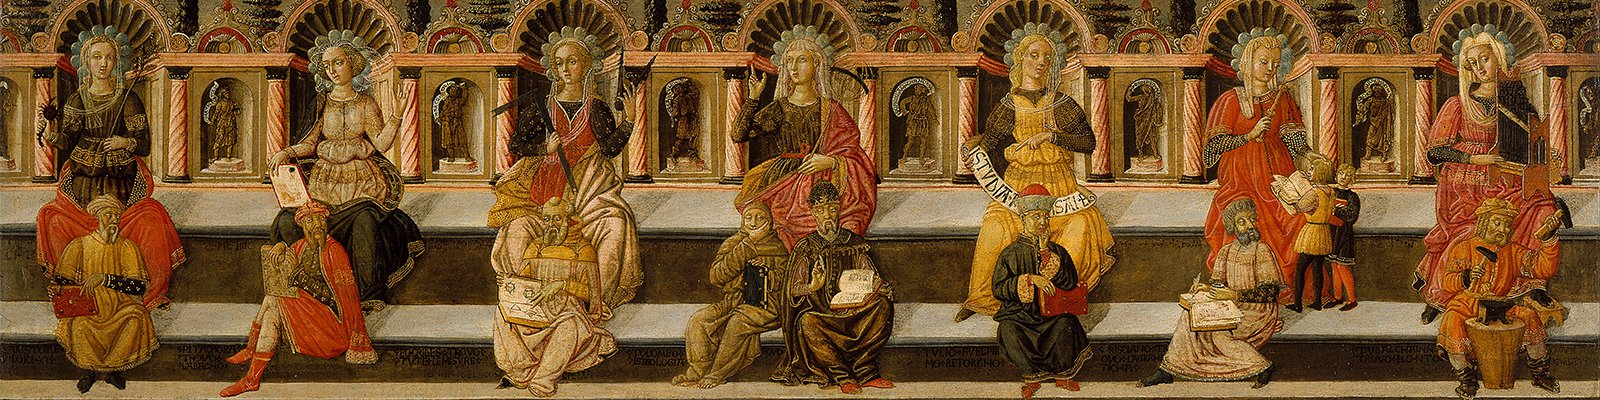 The Seven Liberal Arts - artist: Giovanni di ser Giovanni Guidi. Photo: Wikimedia Commons